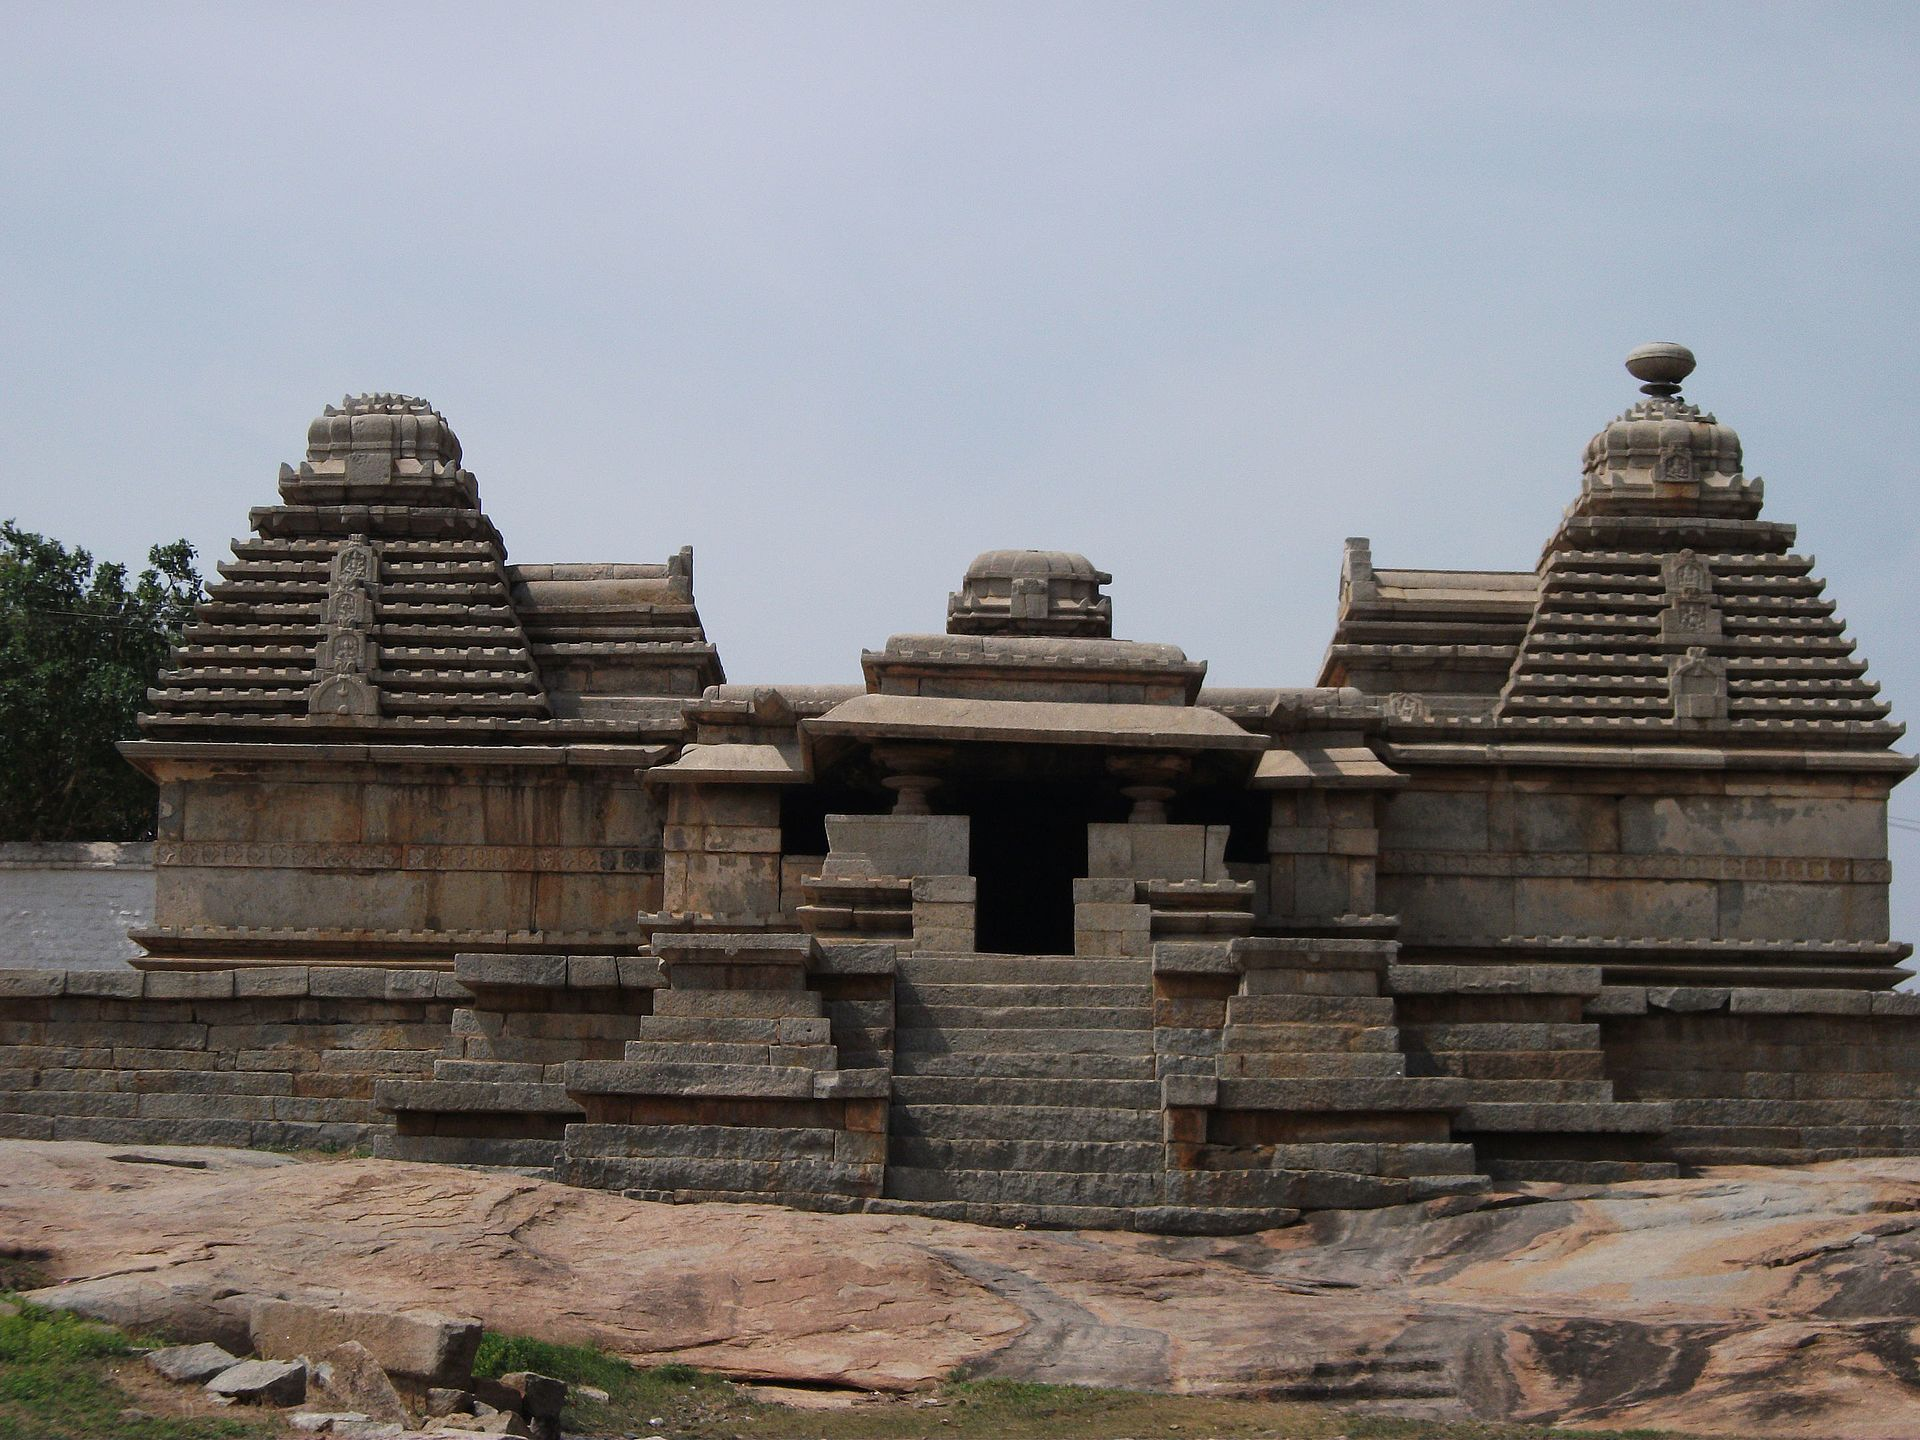 temples of hampi 10 temples in hampi here is a list of the sacred temples in hampi that you can visit now just a village, hampi was an affluent city in its ancient past it has many hindu temples, many of which endorse the vedanta mythology.